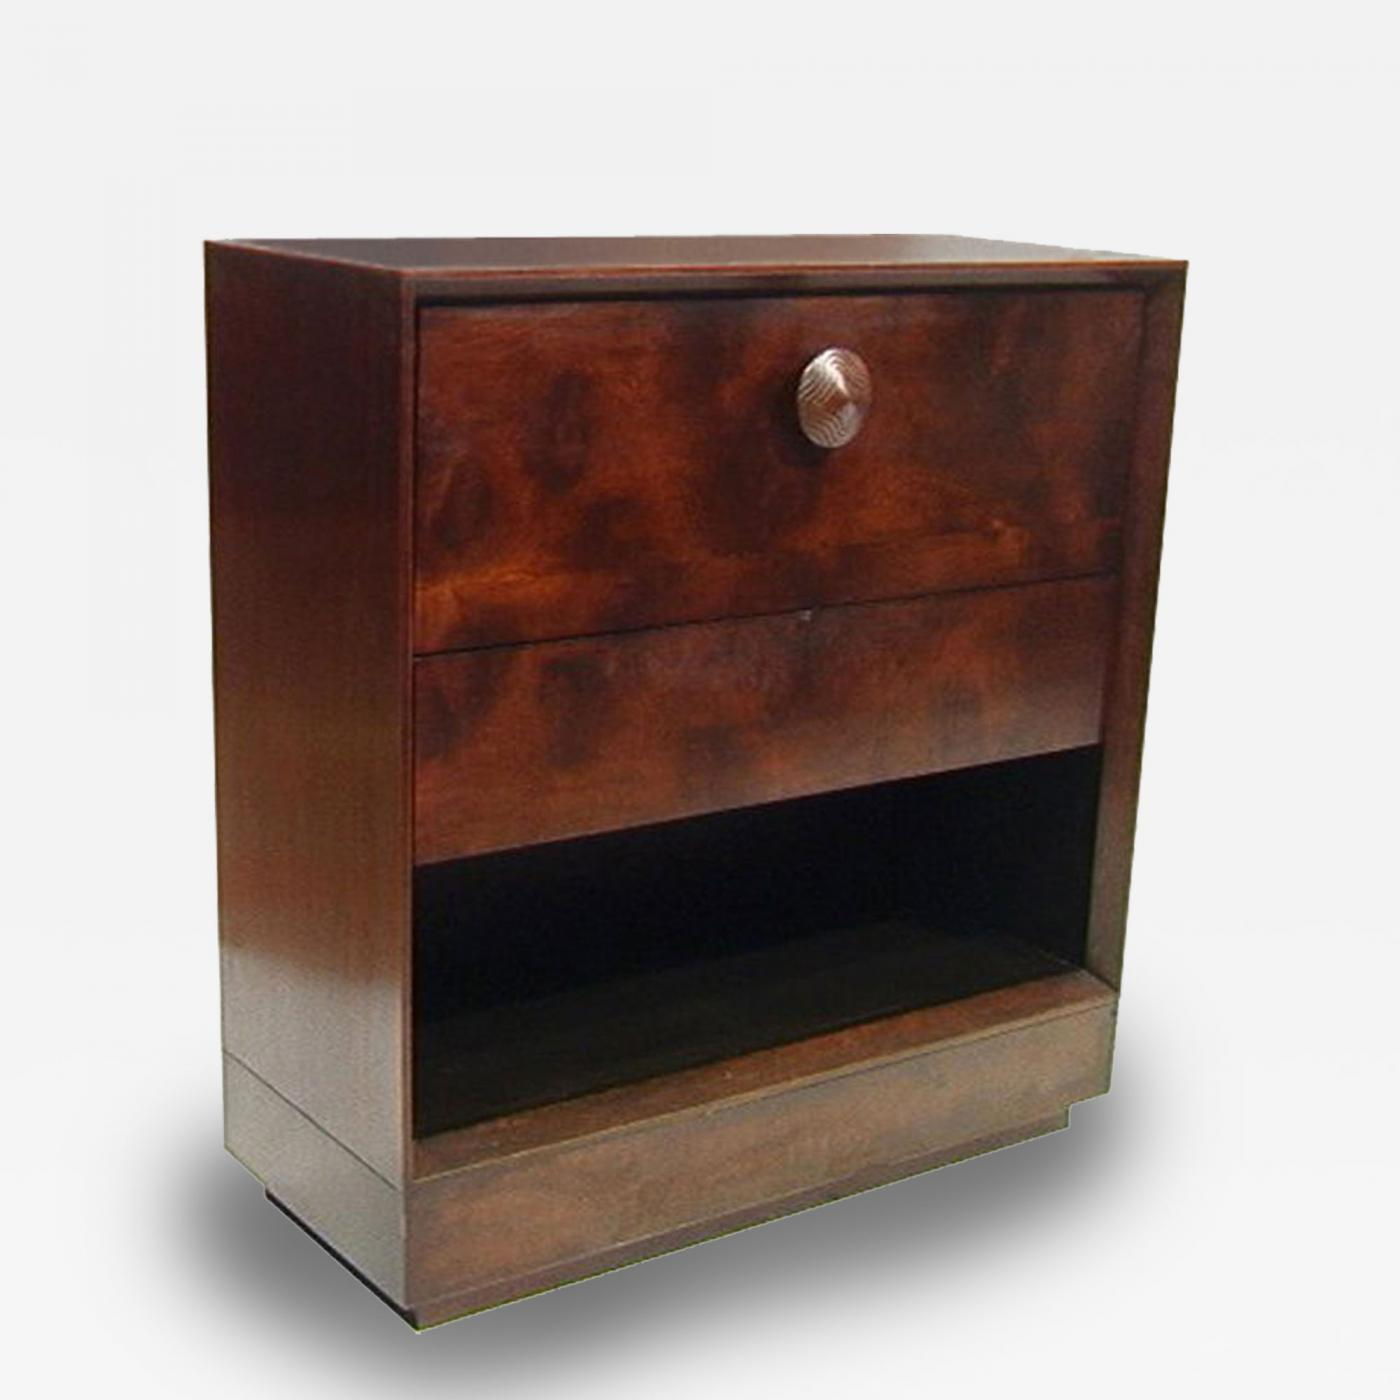 Bon Listings / Furniture / Case Pieces U0026 Storage / Other · Gilbert Rohde ...